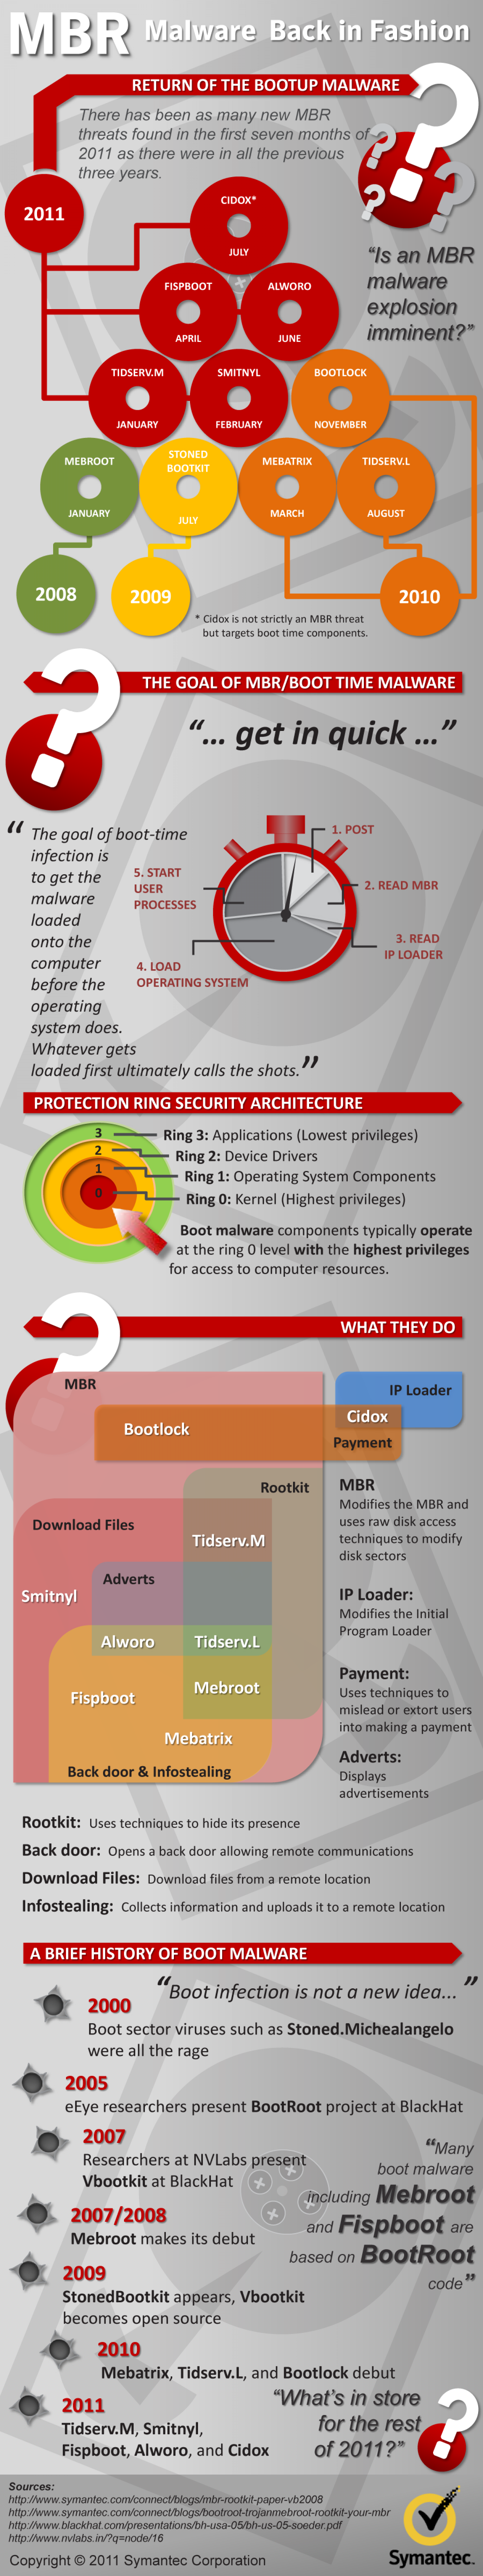 MBR Malware Back in Fashion Infographic